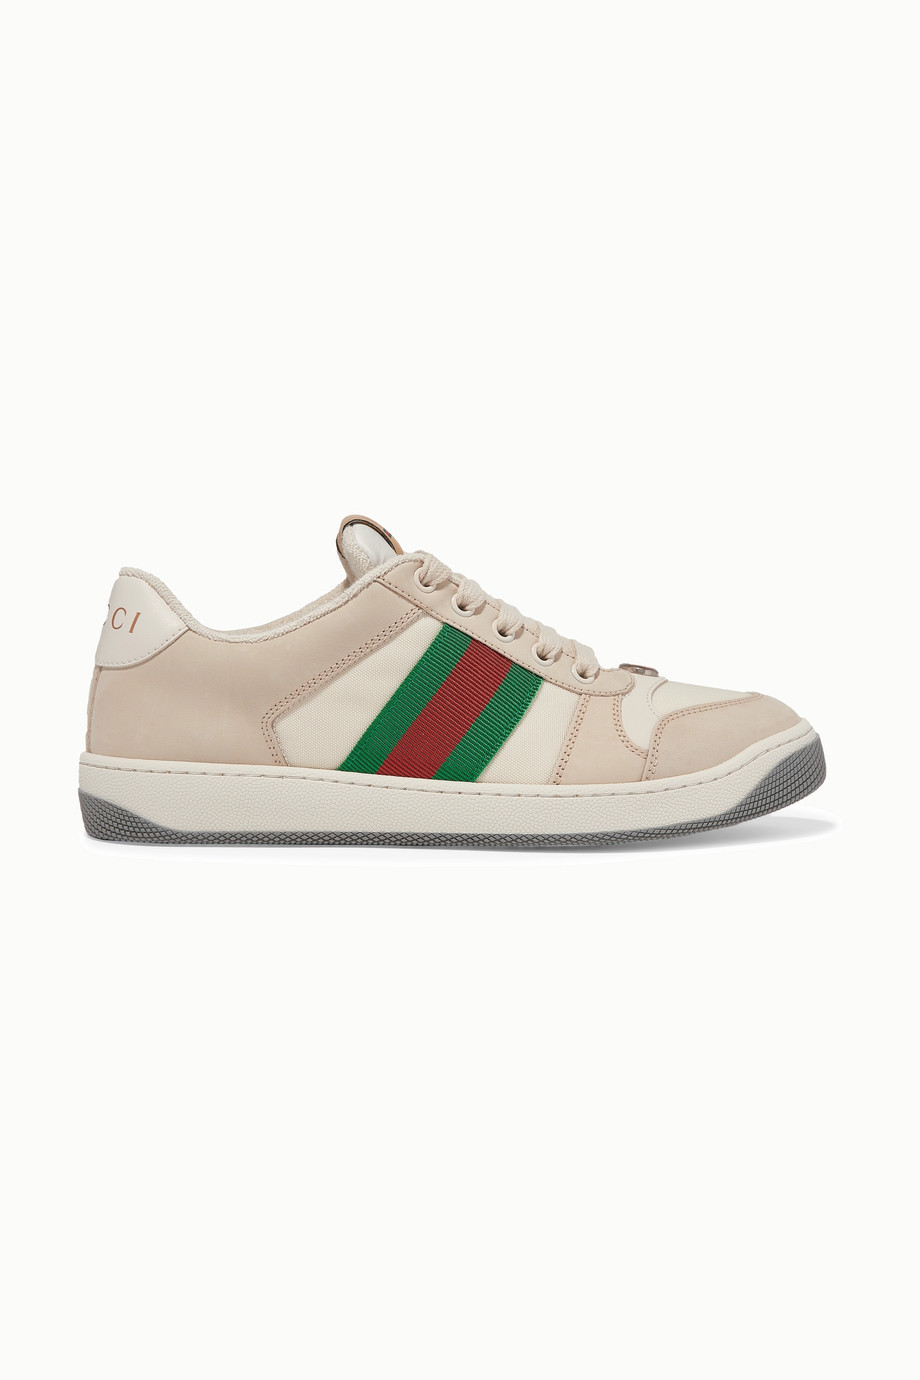 Zapatillas modelo screener de Gucci.